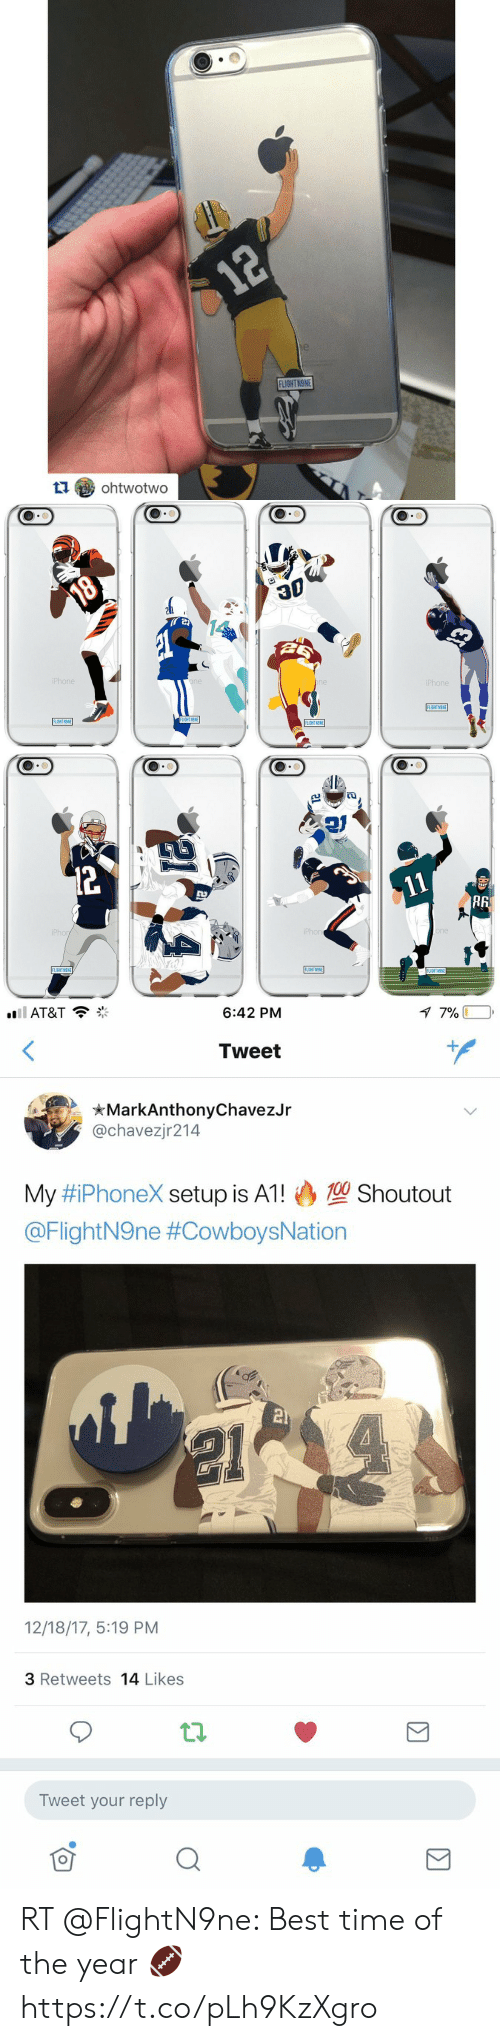 iphon: 12  12  e  FLIGHT NONE  ohtwotwo   18  iPhone  one  one  iPhone  FLIGHT NONE  FLIGHT N9NE  FLIGHT NSNE  FLIGHT NONE  12  11  iPhon  iPhone  one  FLIGHTN9NE  FLIGHTN9NE  FLIGHT N9NE   7 7%  ll AT&T  6:42 PM  Tweet  MarkAnthonyChavezJr  @chavezjr214  100 Shoutout  My #iPhoneX setup is A1!  @FlightN9ne #CowboysNation  21  12/18/17, 5:19 PM  3 Retweets 14 Likes  Tweet your reply RT @FlightN9ne: Best time of the year 🏈 https://t.co/pLh9KzXgro